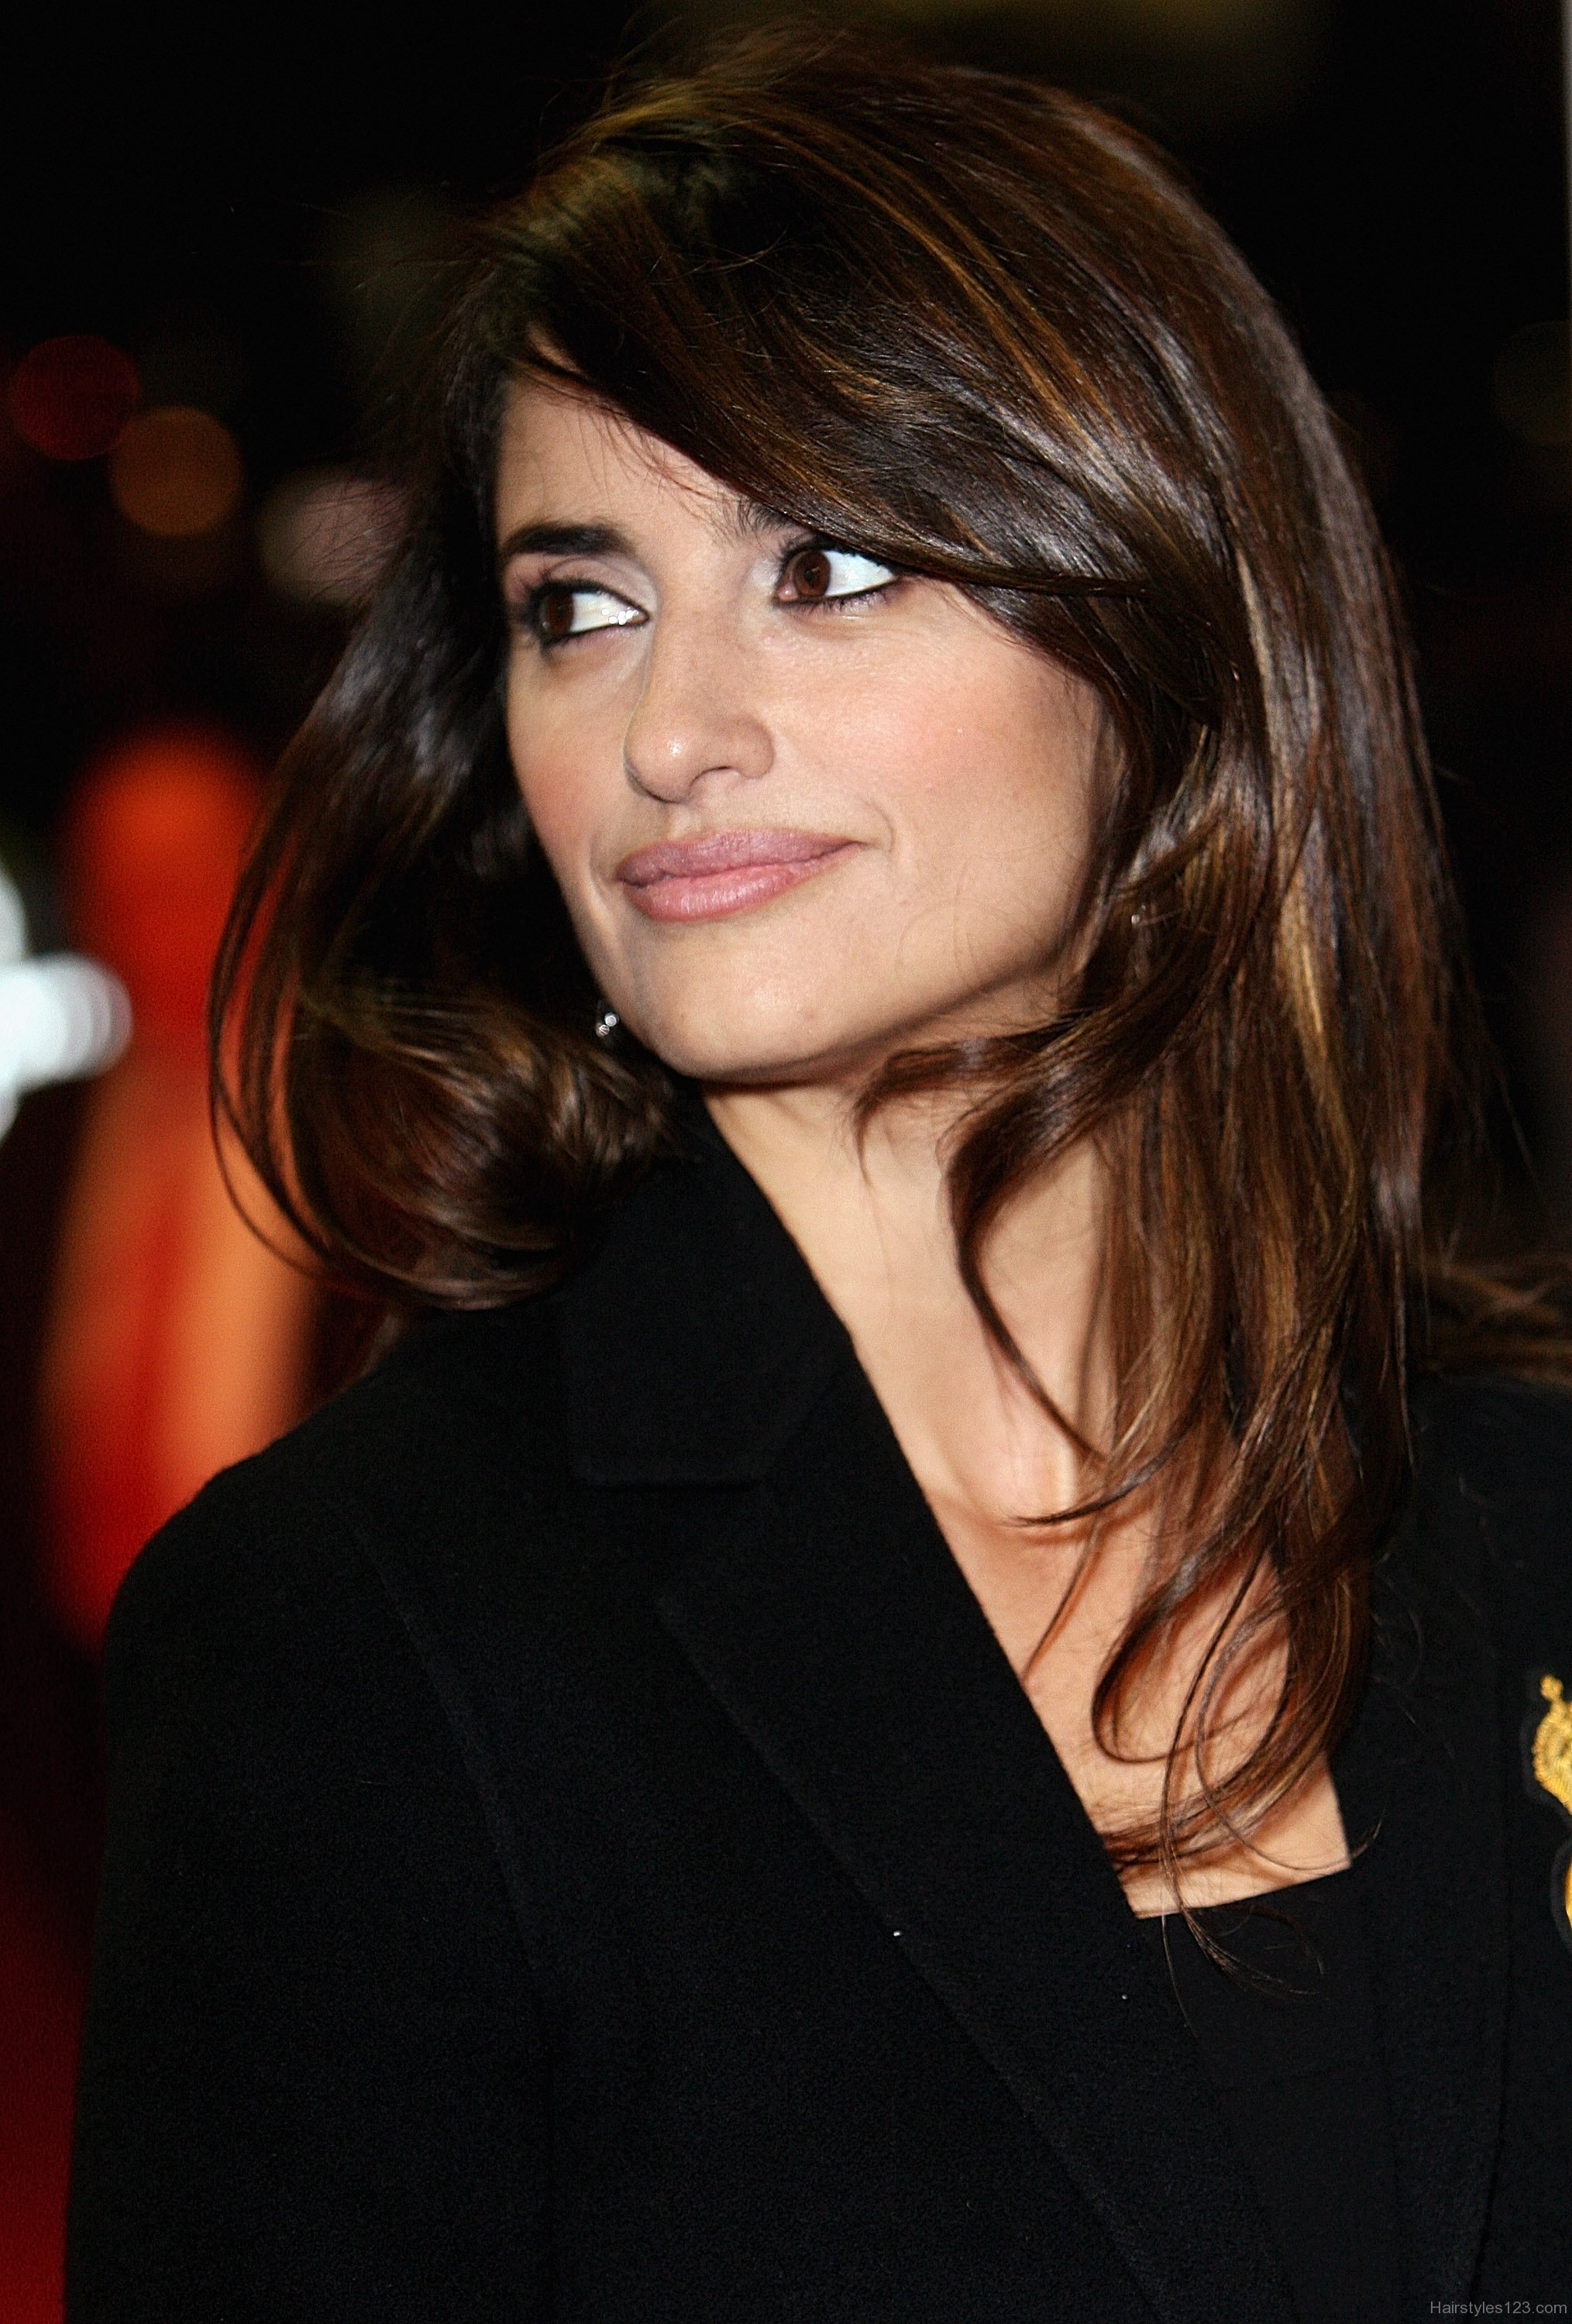 Penélope Cruz brunette hair colors